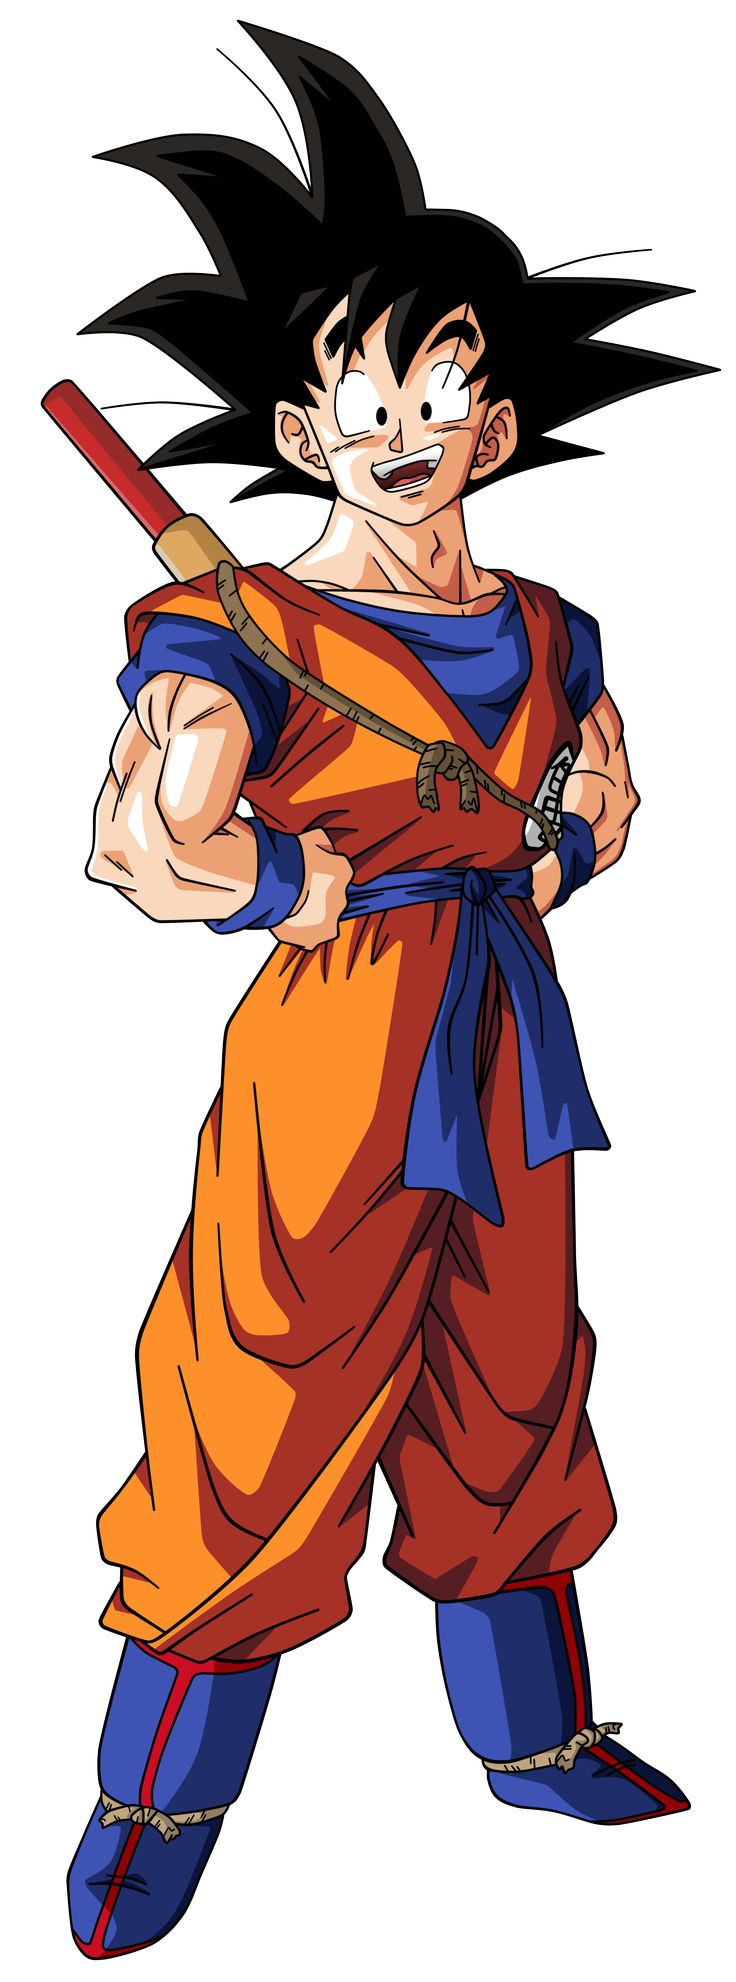 Goku by BardockSonic on DeviantArt